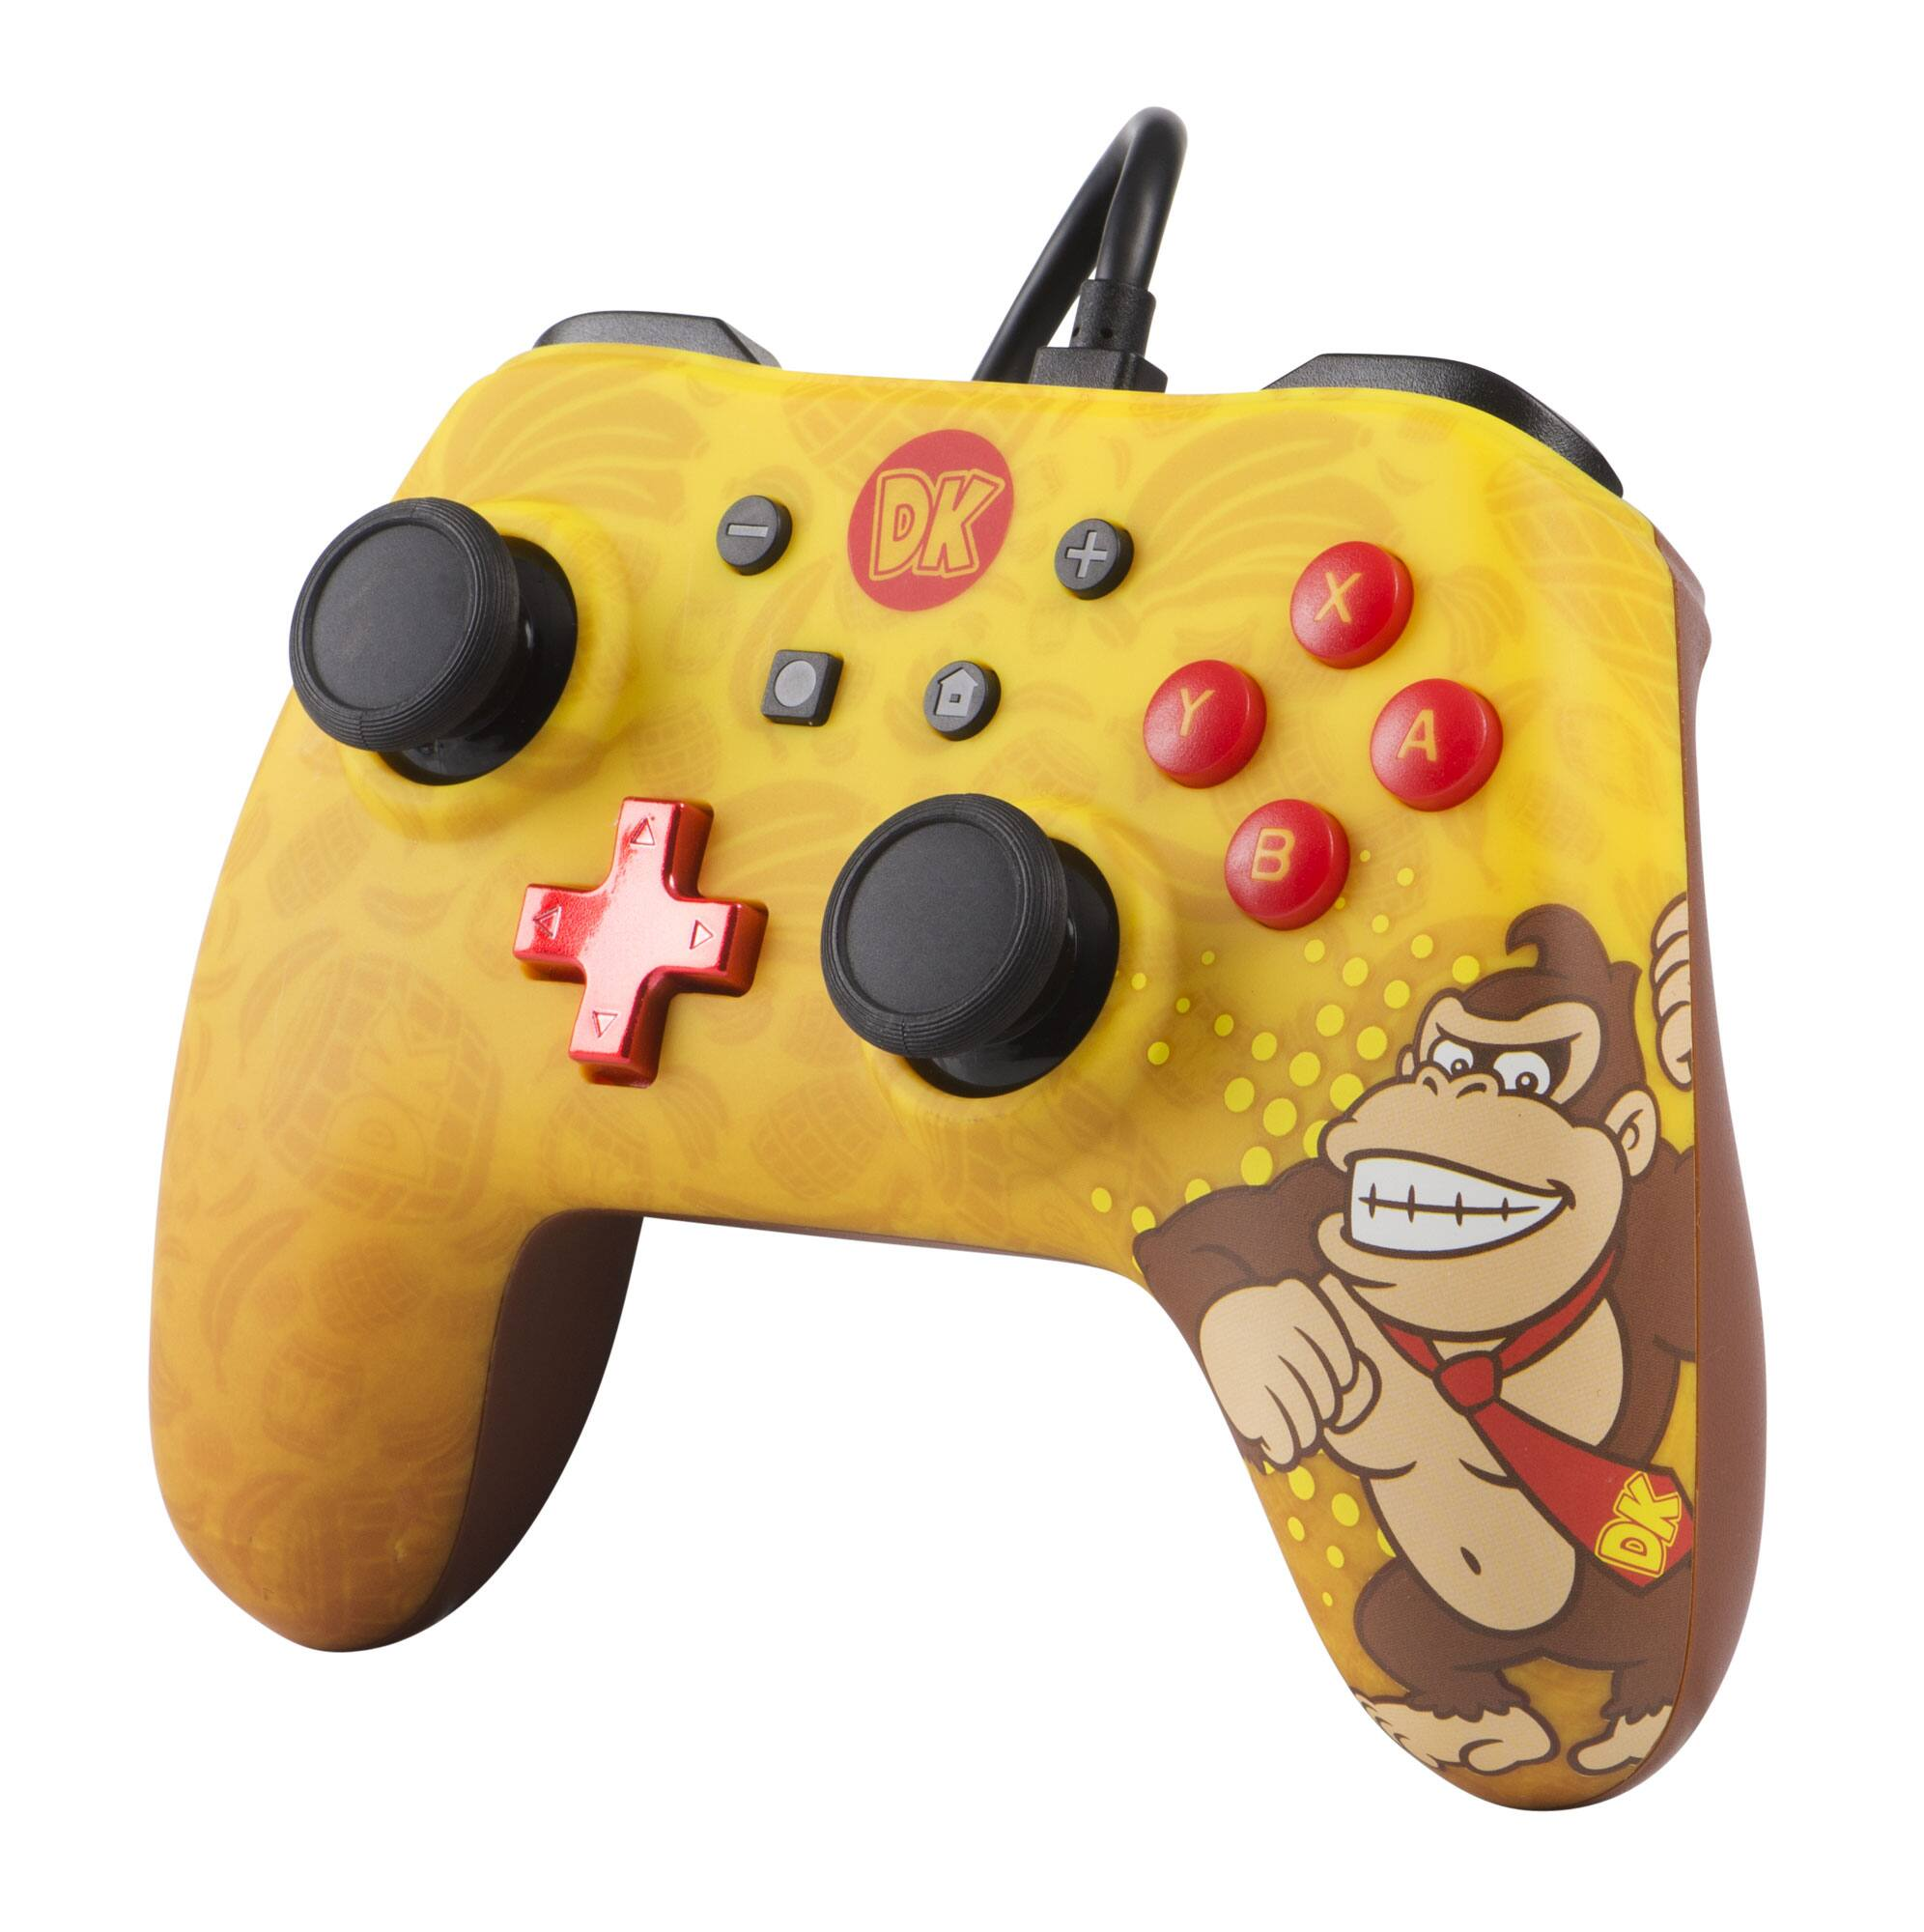 PowerA Wired Controller for Nintendo Switch – Donkey Kong (1506258-01) - 5$